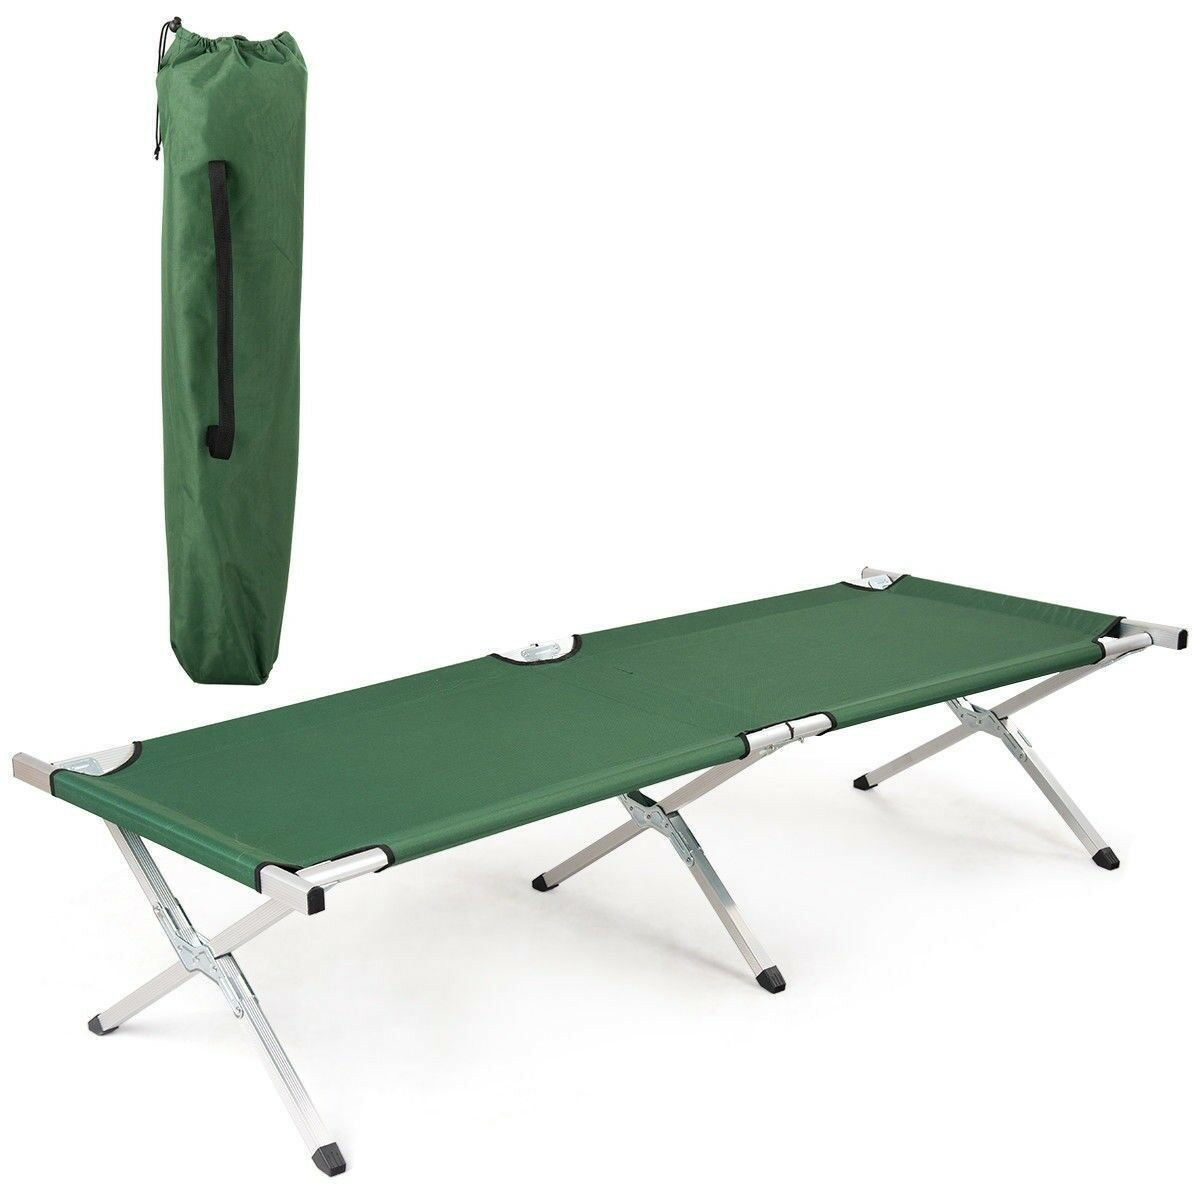 Outdoor Foldable Camping  Hiking Sleep Bed Portable Military Cot Carrying Bag US  free shipping worldwide